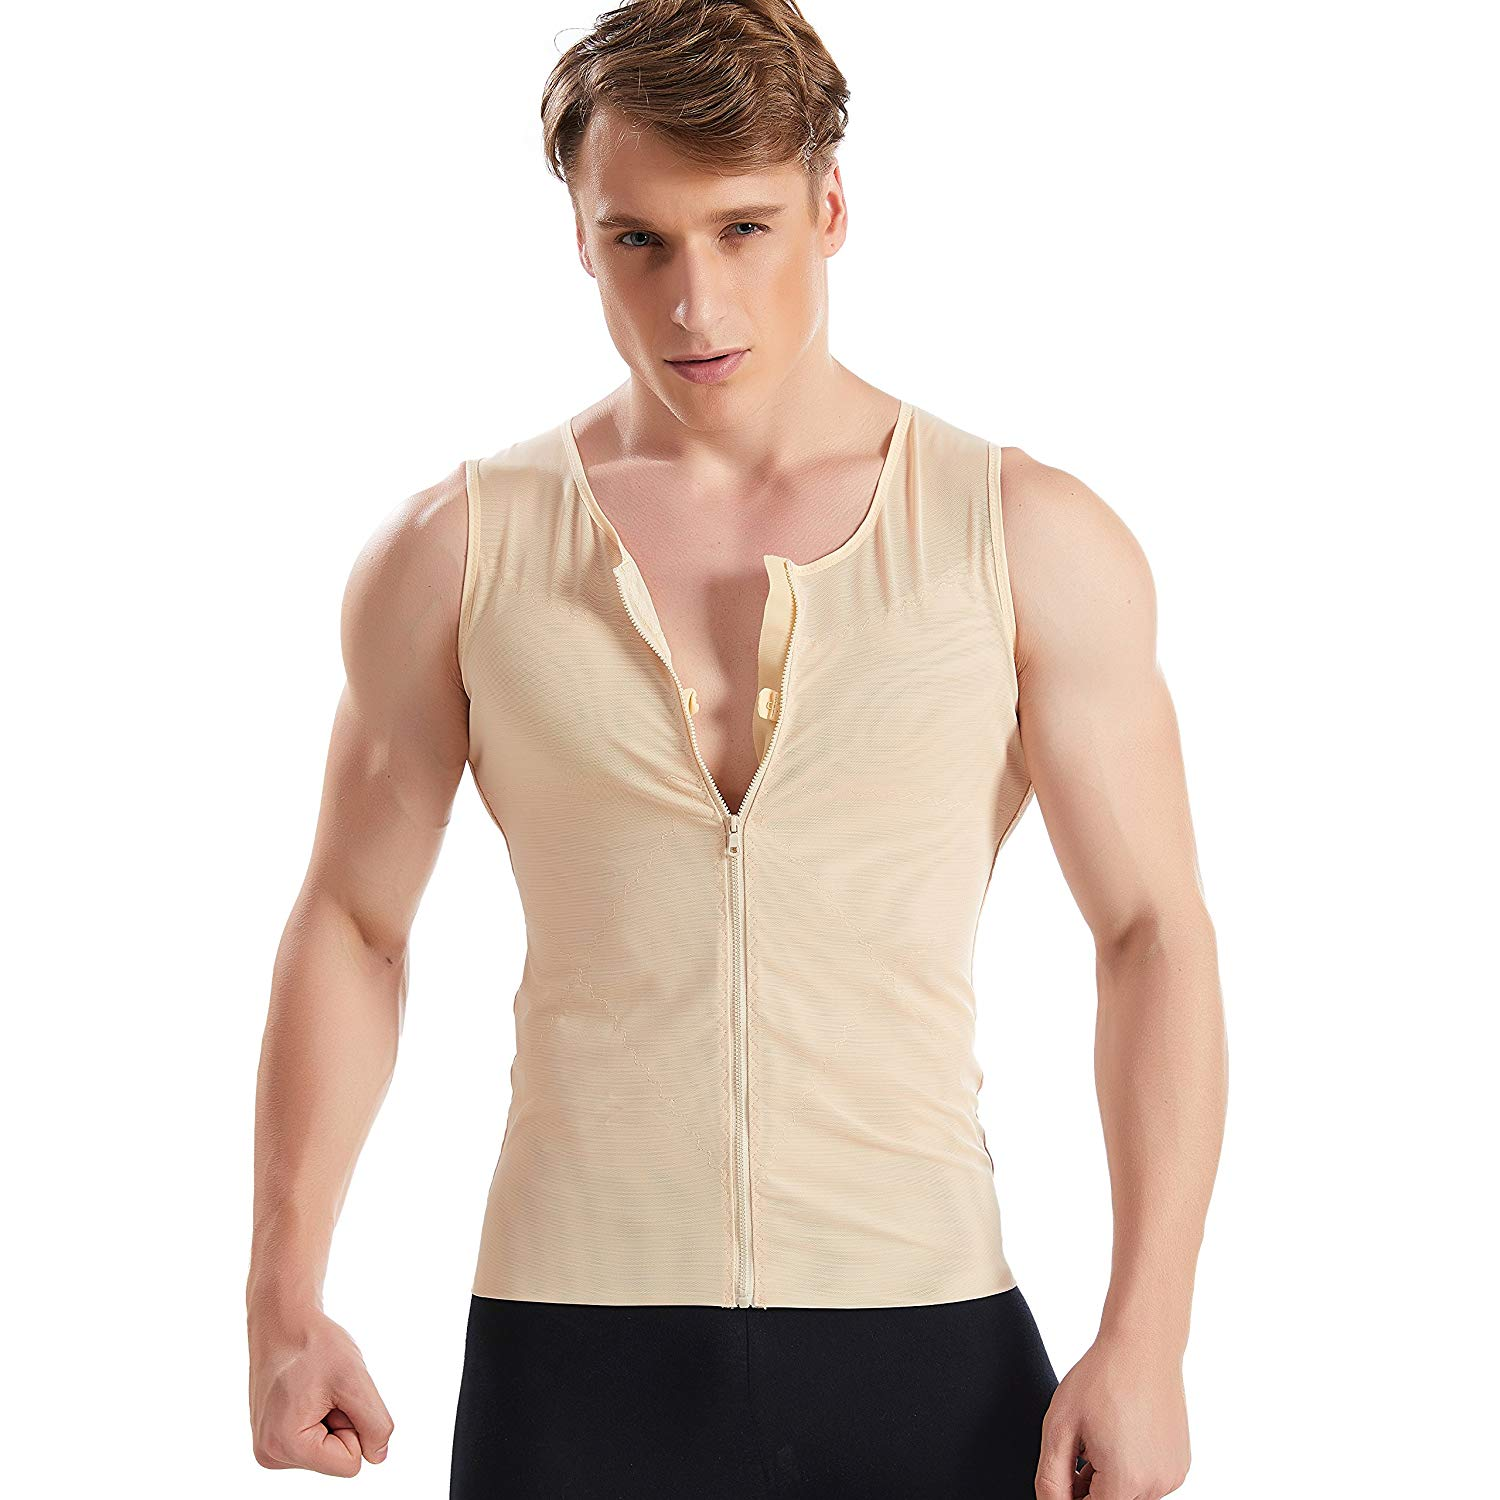 Men's Slimming Body Shaper Weightloss Trainer Corset